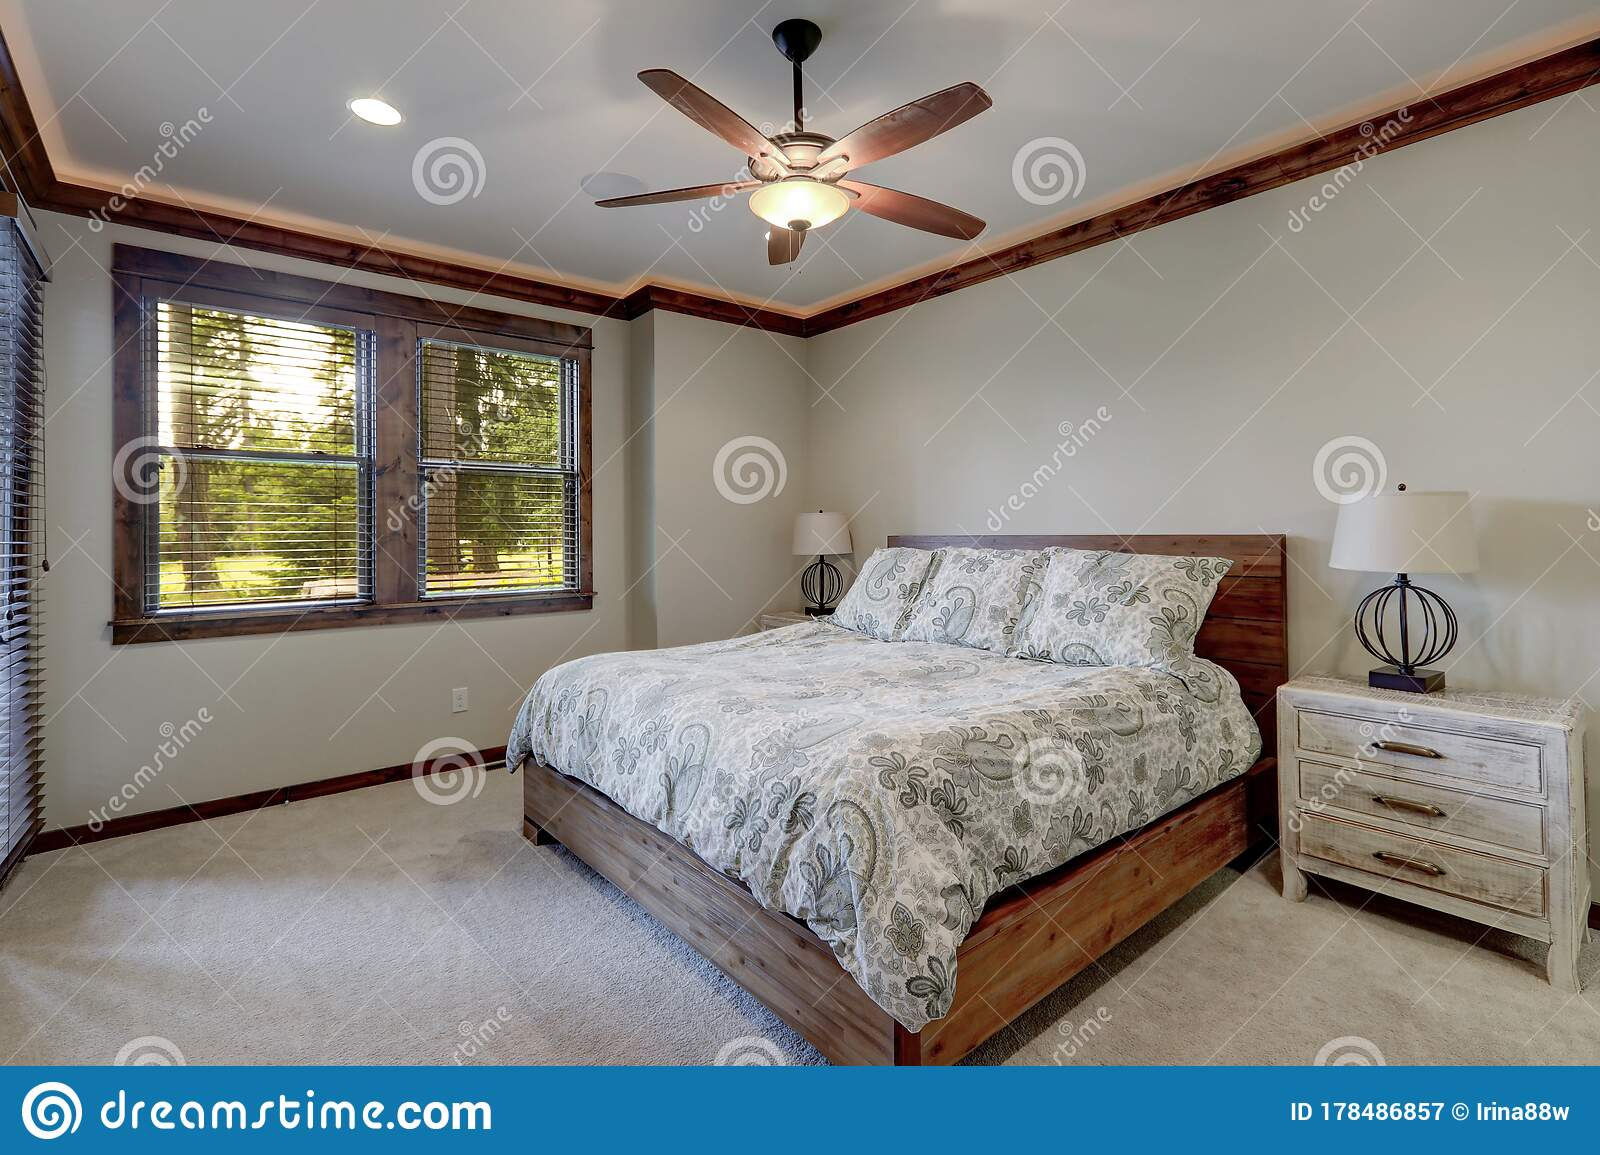 Bedroom Interior With Beige Walls And Wood Trim And Ceiling Fan Stock Image Image Of Bedroom Amazing 178486857